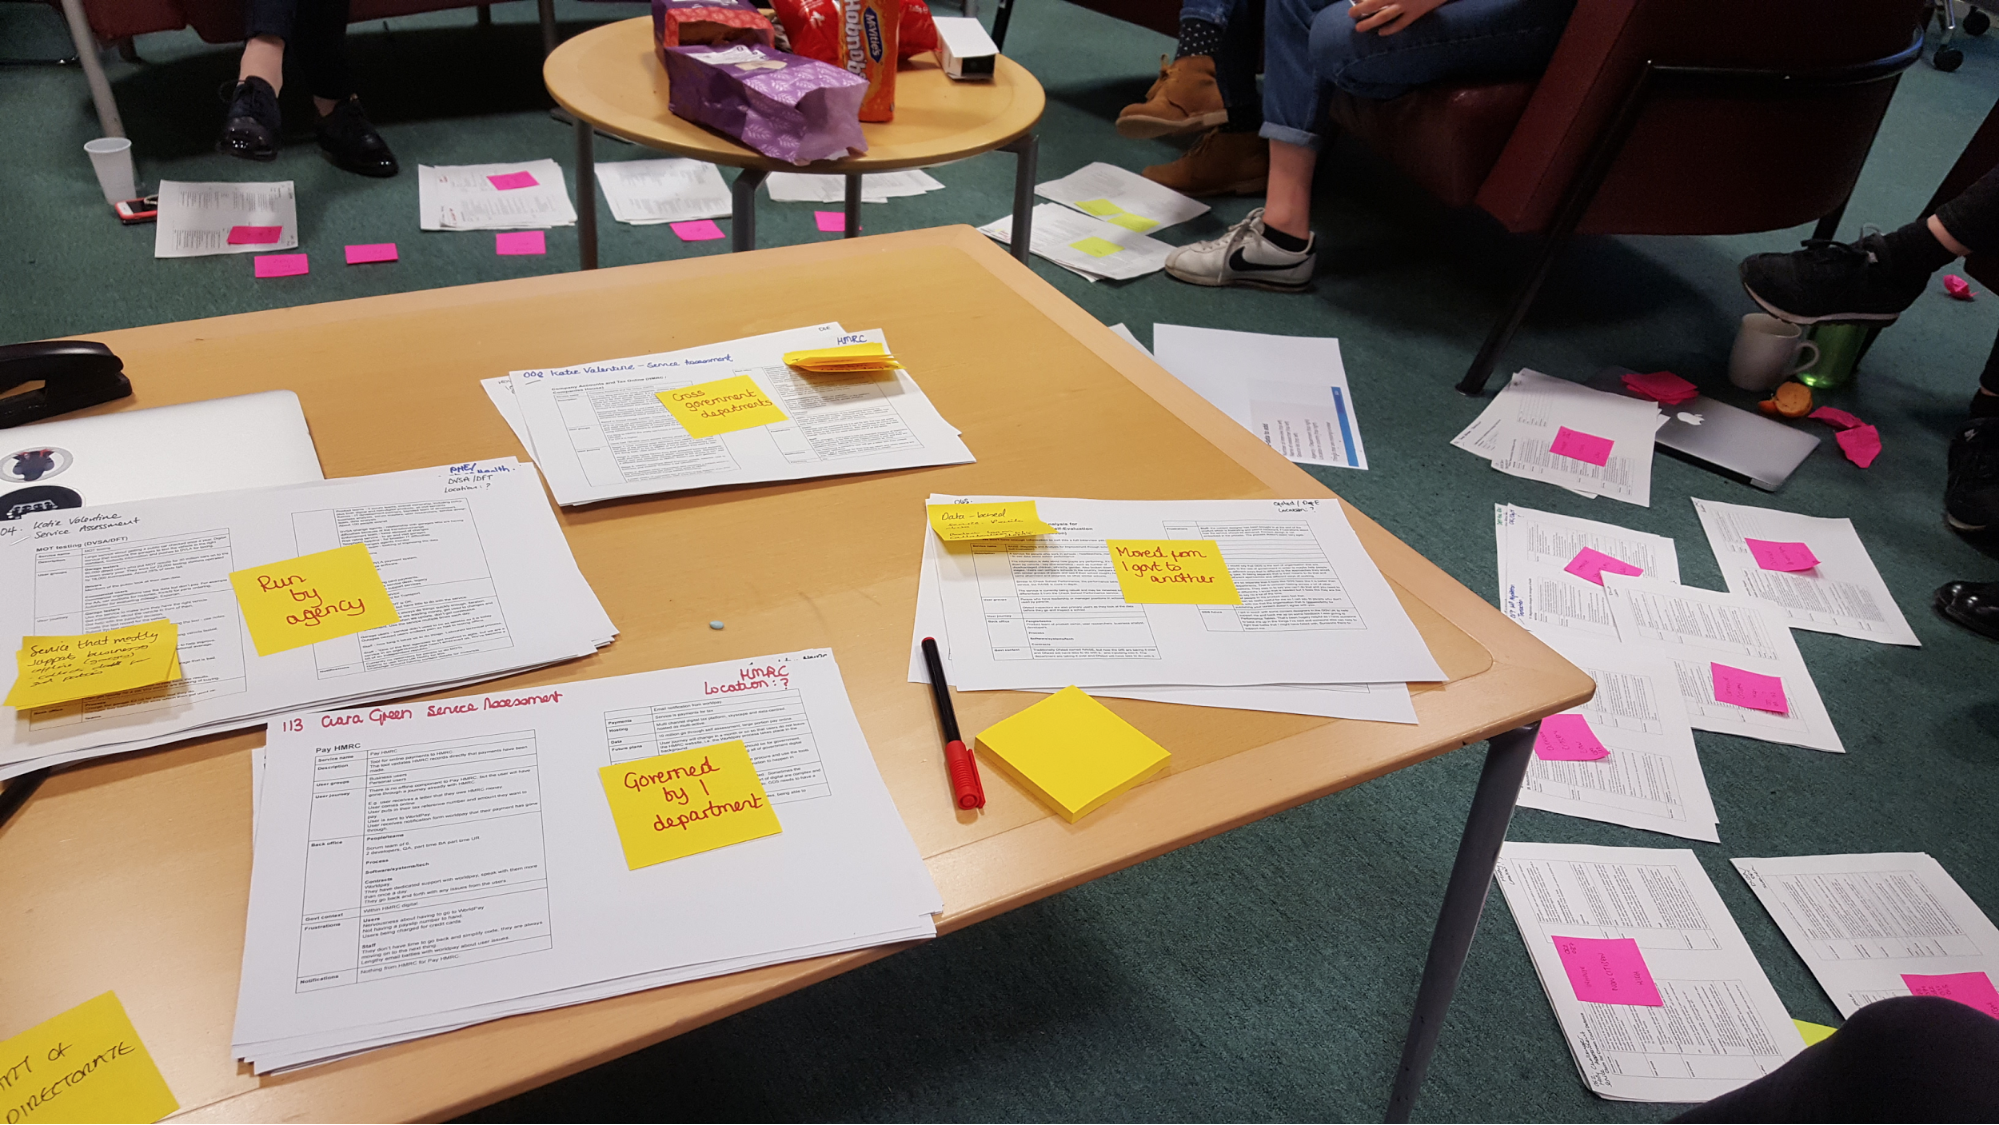 A table covered in pieces of paper and Post-it notes during analysis session